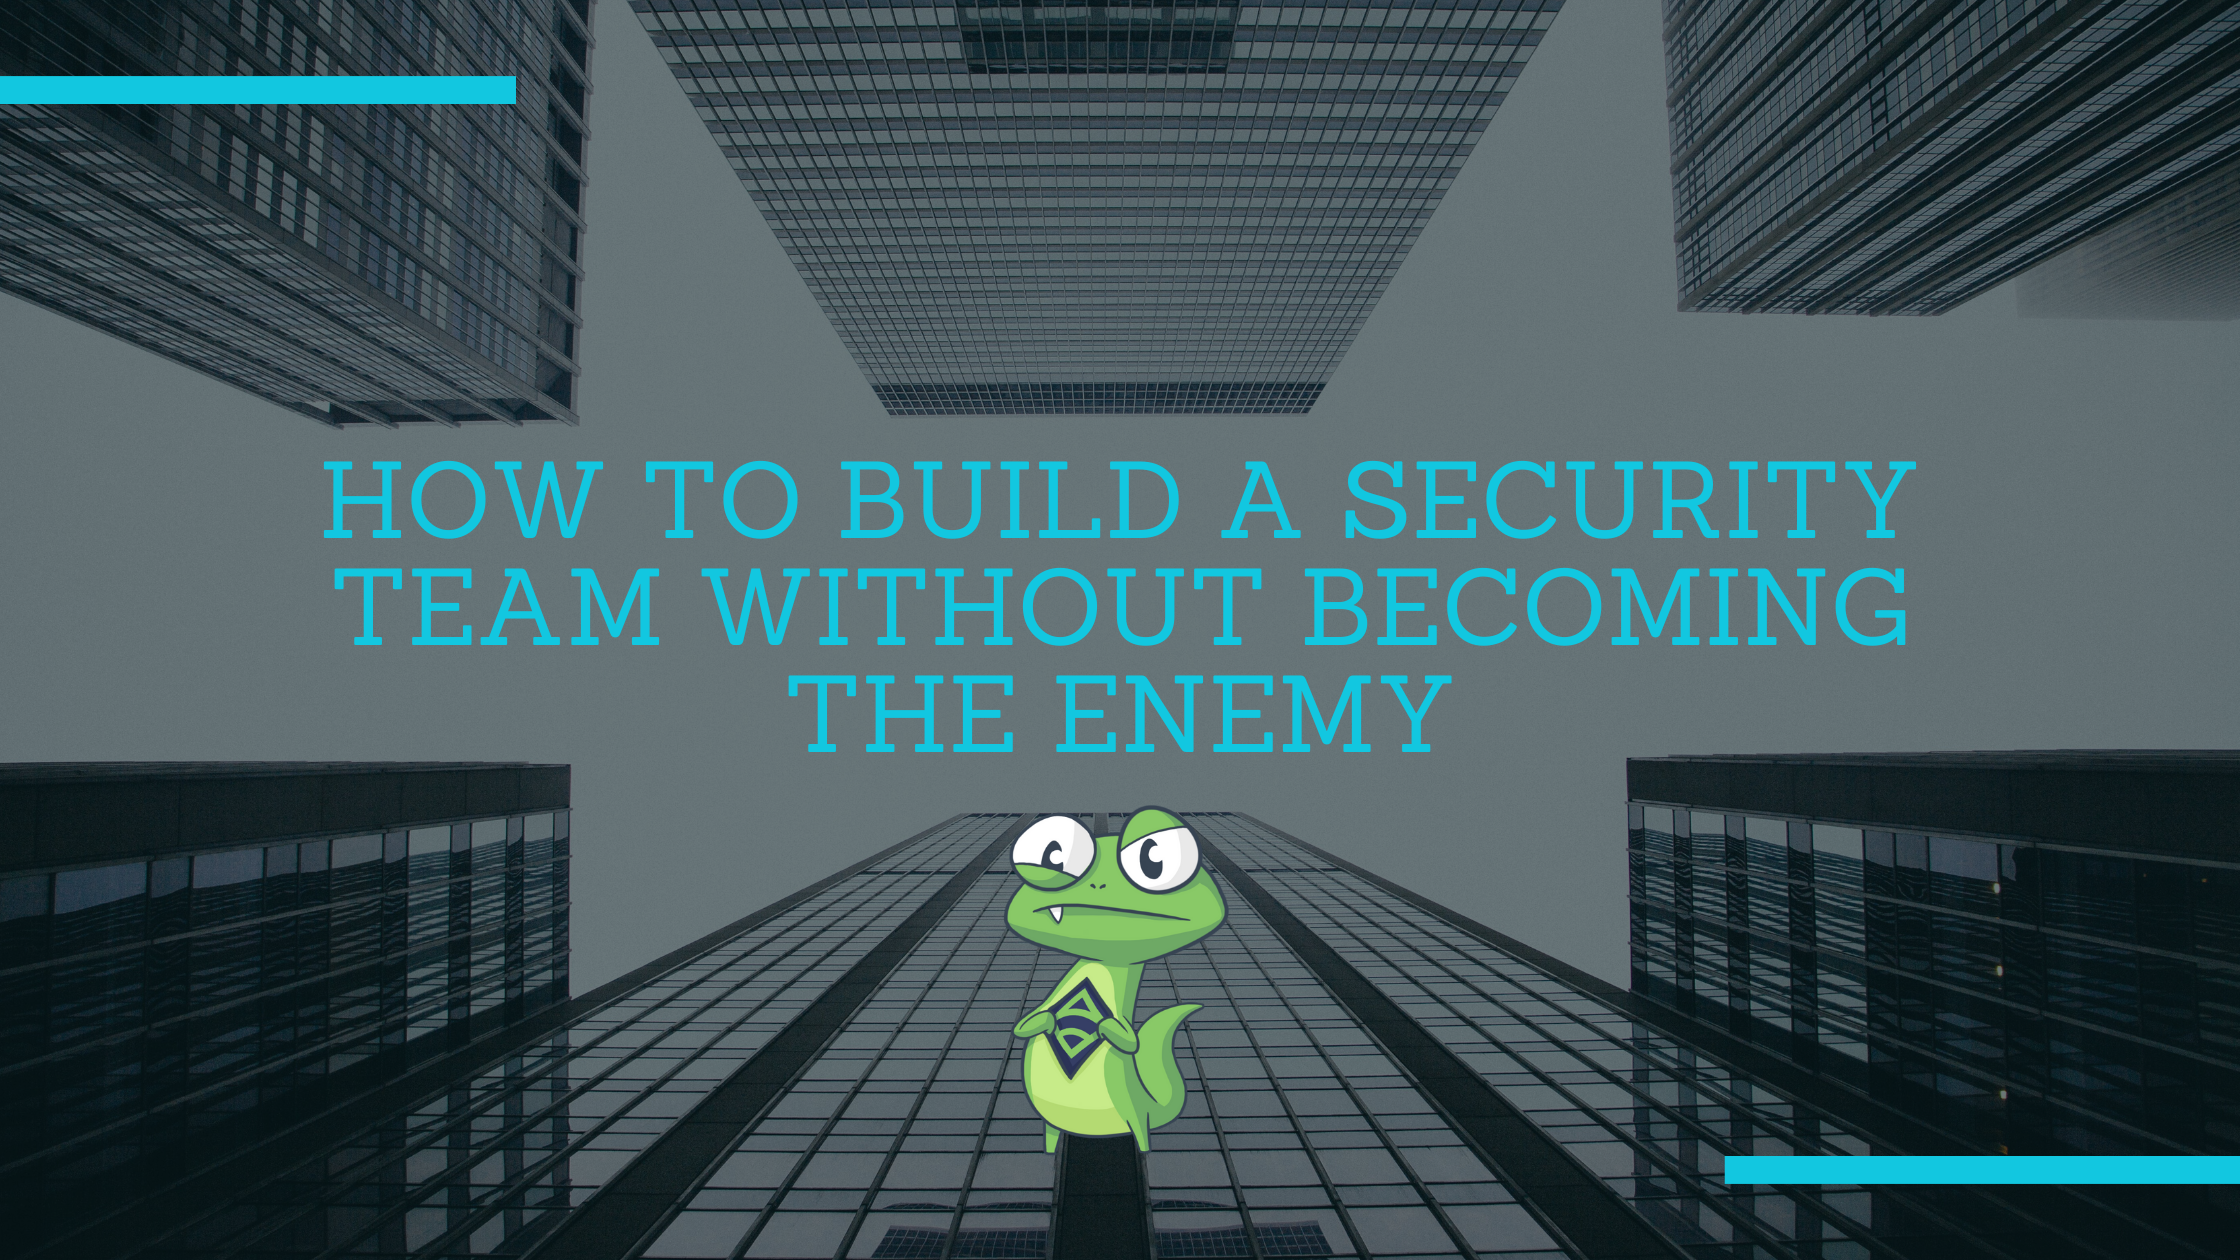 How to build a security team without becoming the enemy (2)